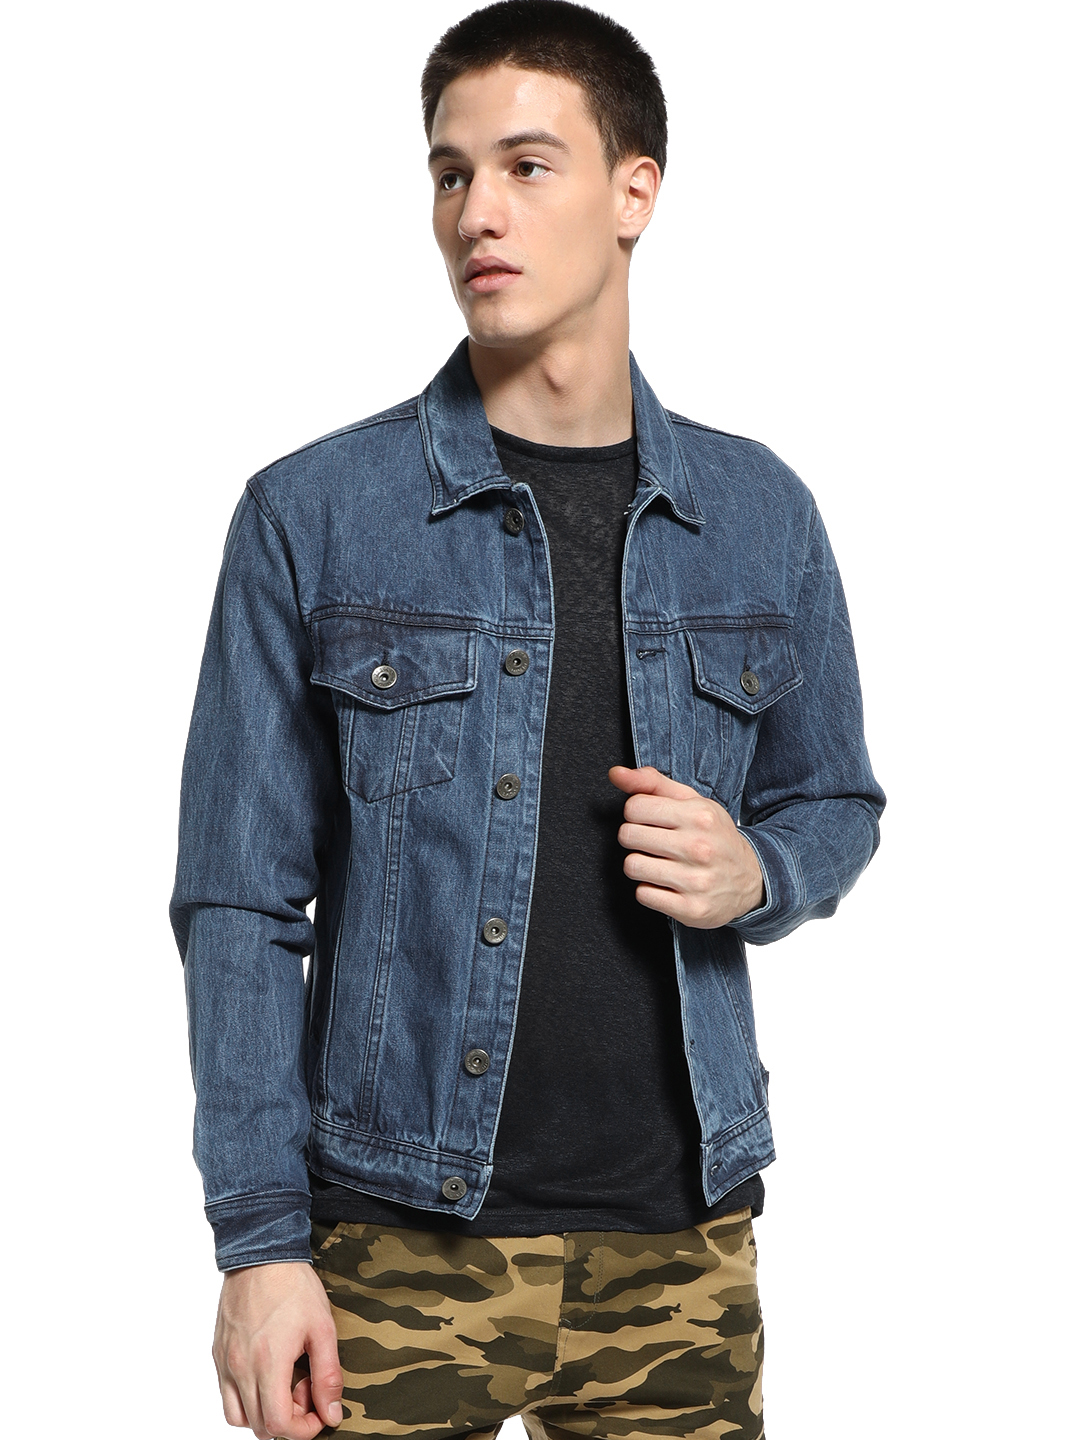 K Denim Dark Blue KOOVS Overdyed Trucker Denim Jacket 1